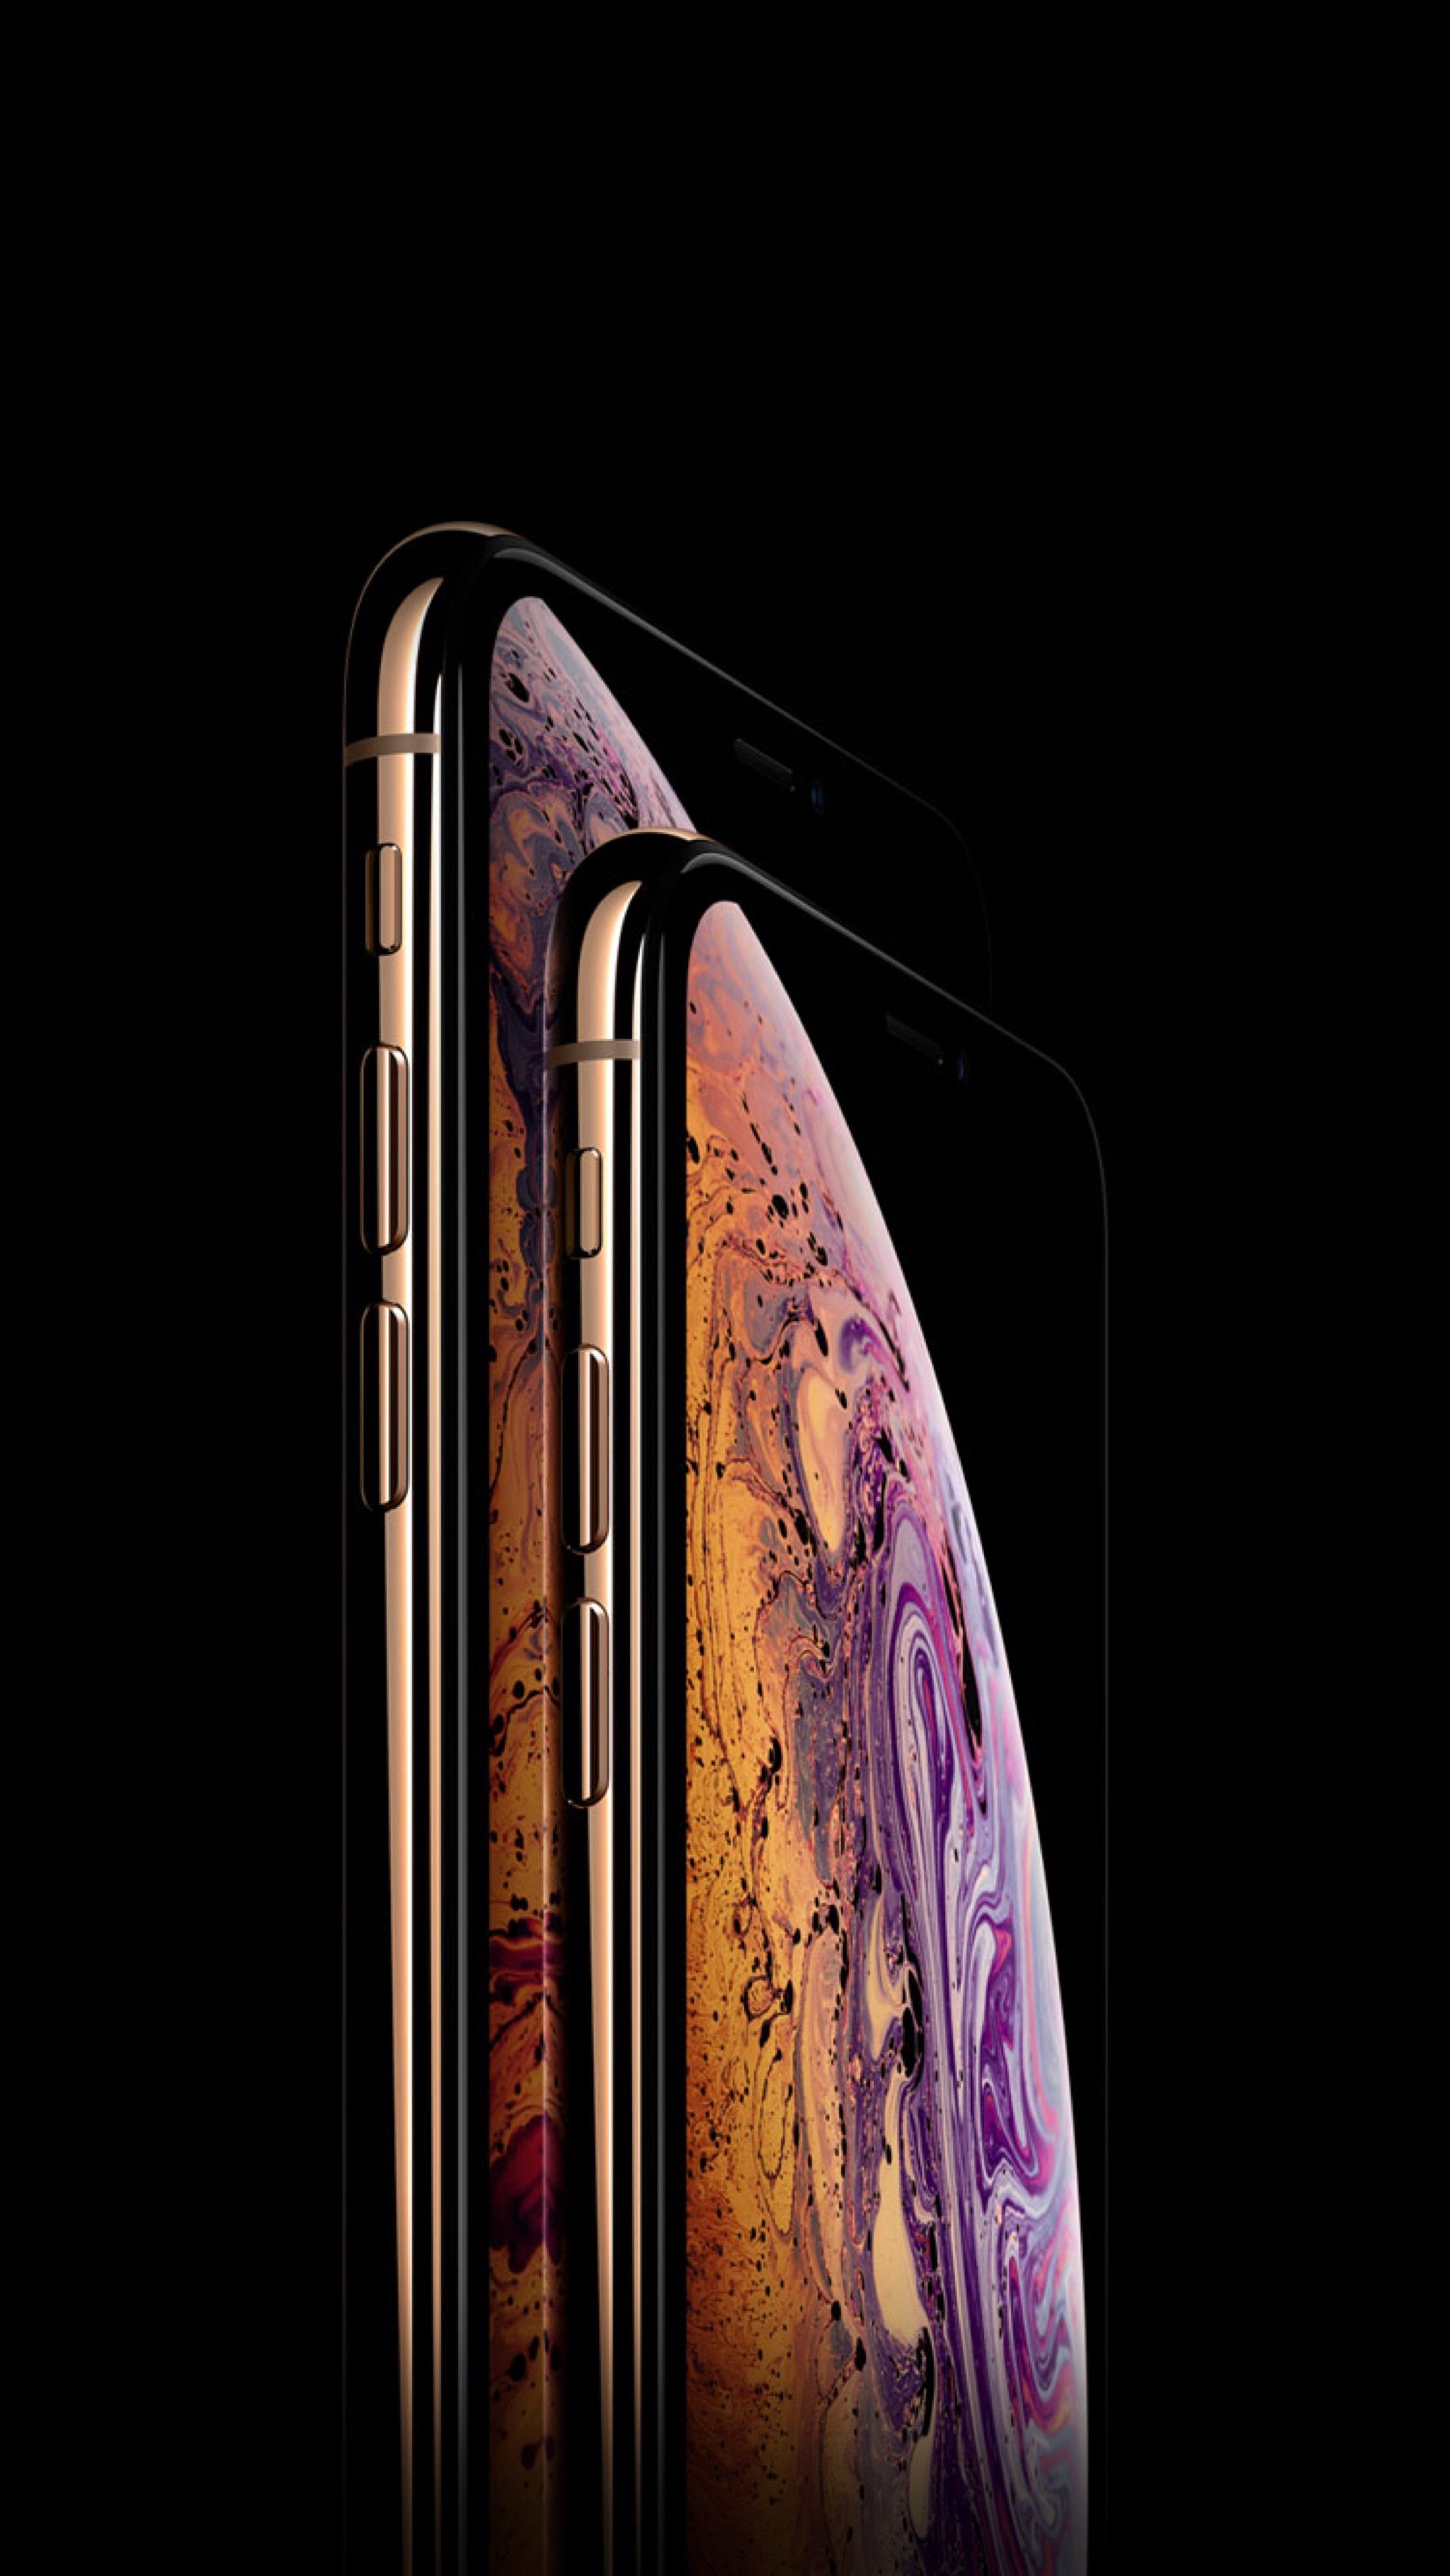 Iphonexs Max Iphone Iphonexs Apples Gold Gold Wallpaper Apple Iphone Accessories Apple Products Apple Technology